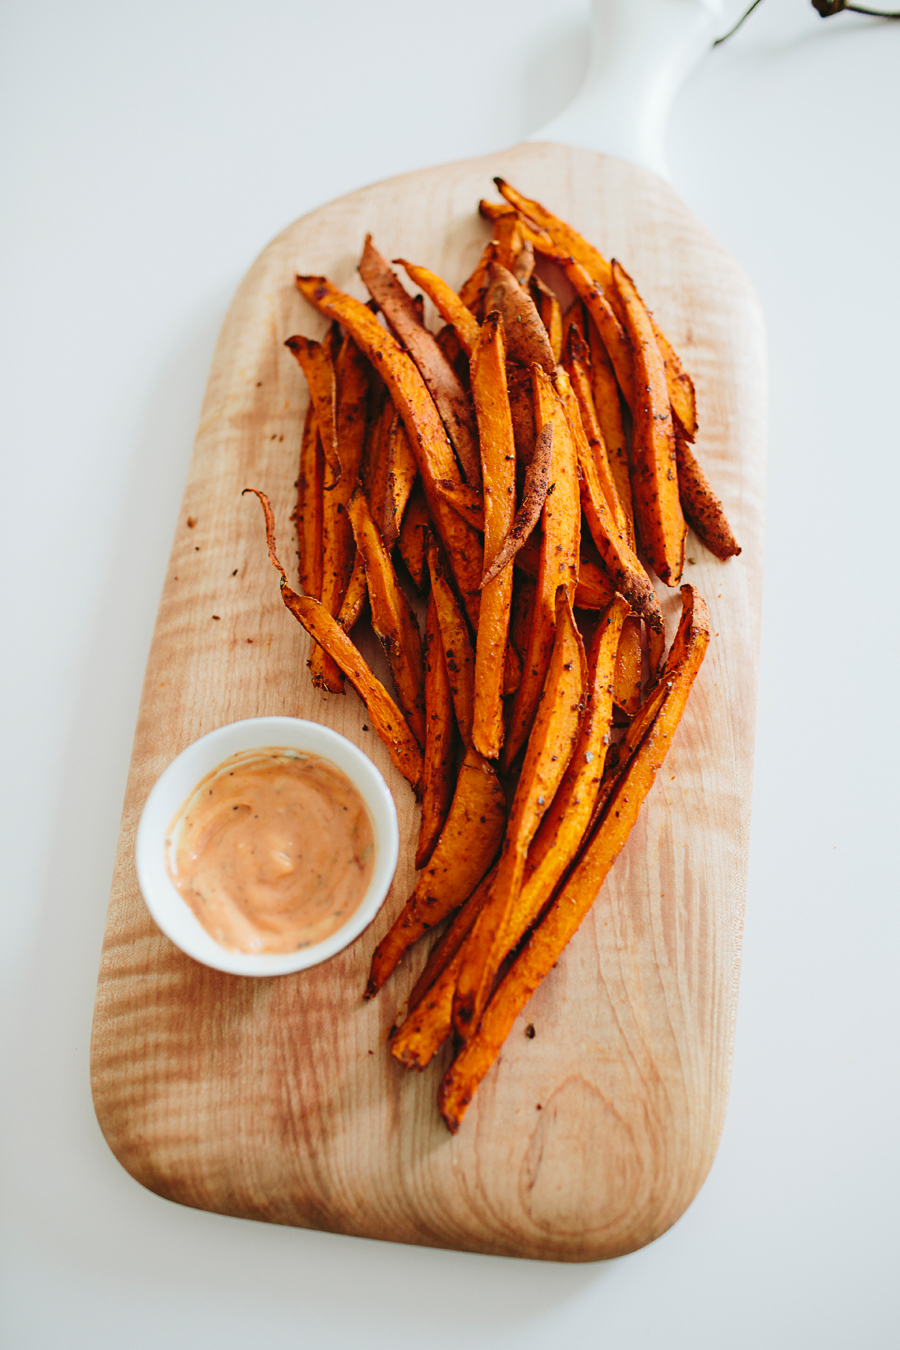 brookecourtney_sweetpotatofries_ovenbaked_frysauce-17.jpg